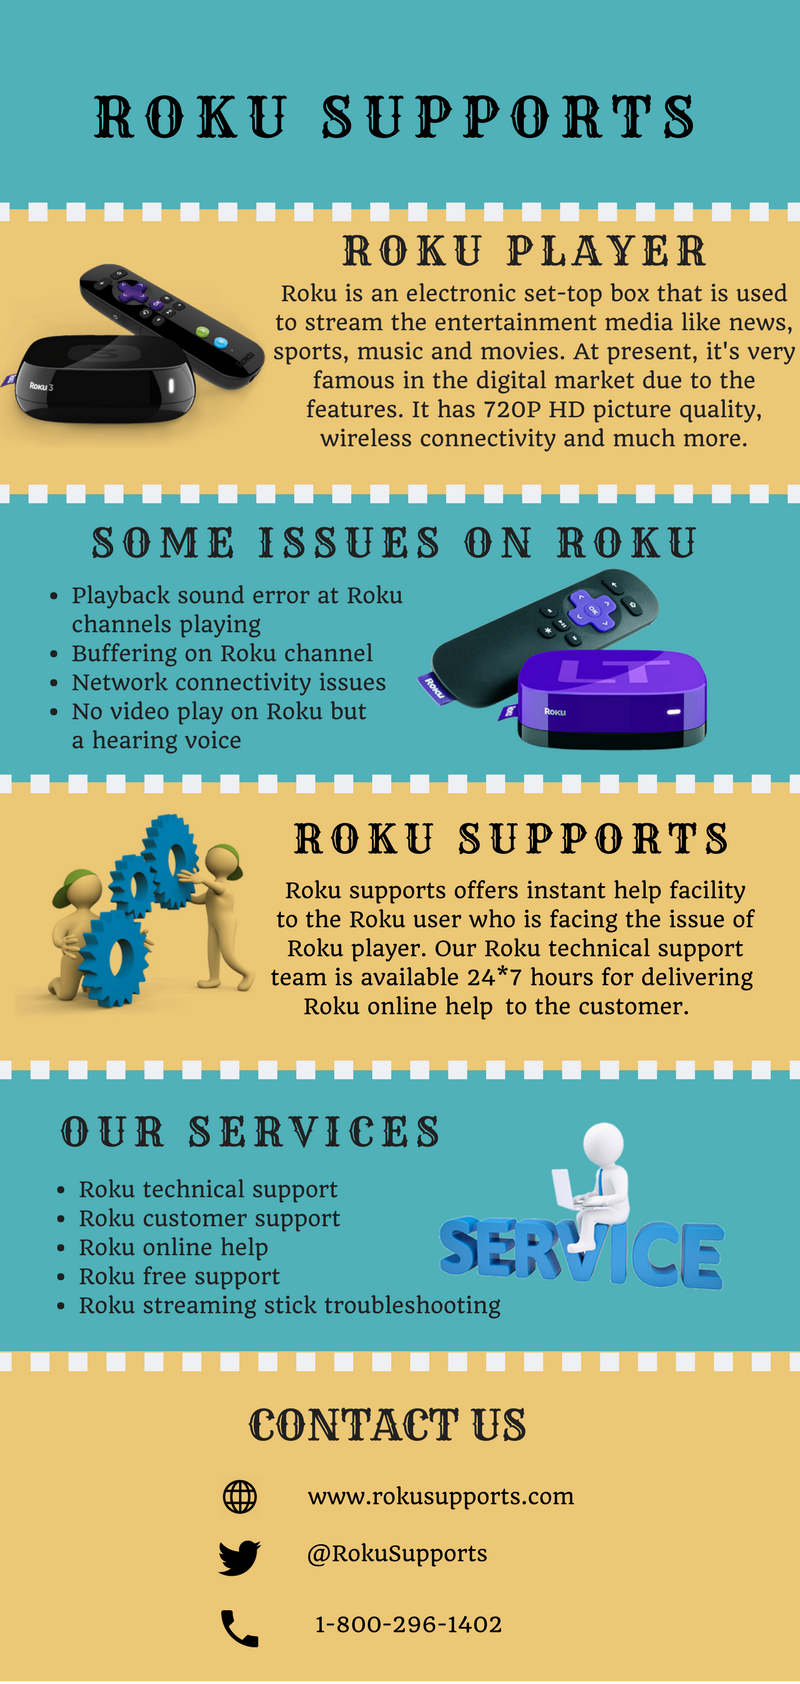 Roku Supports Services